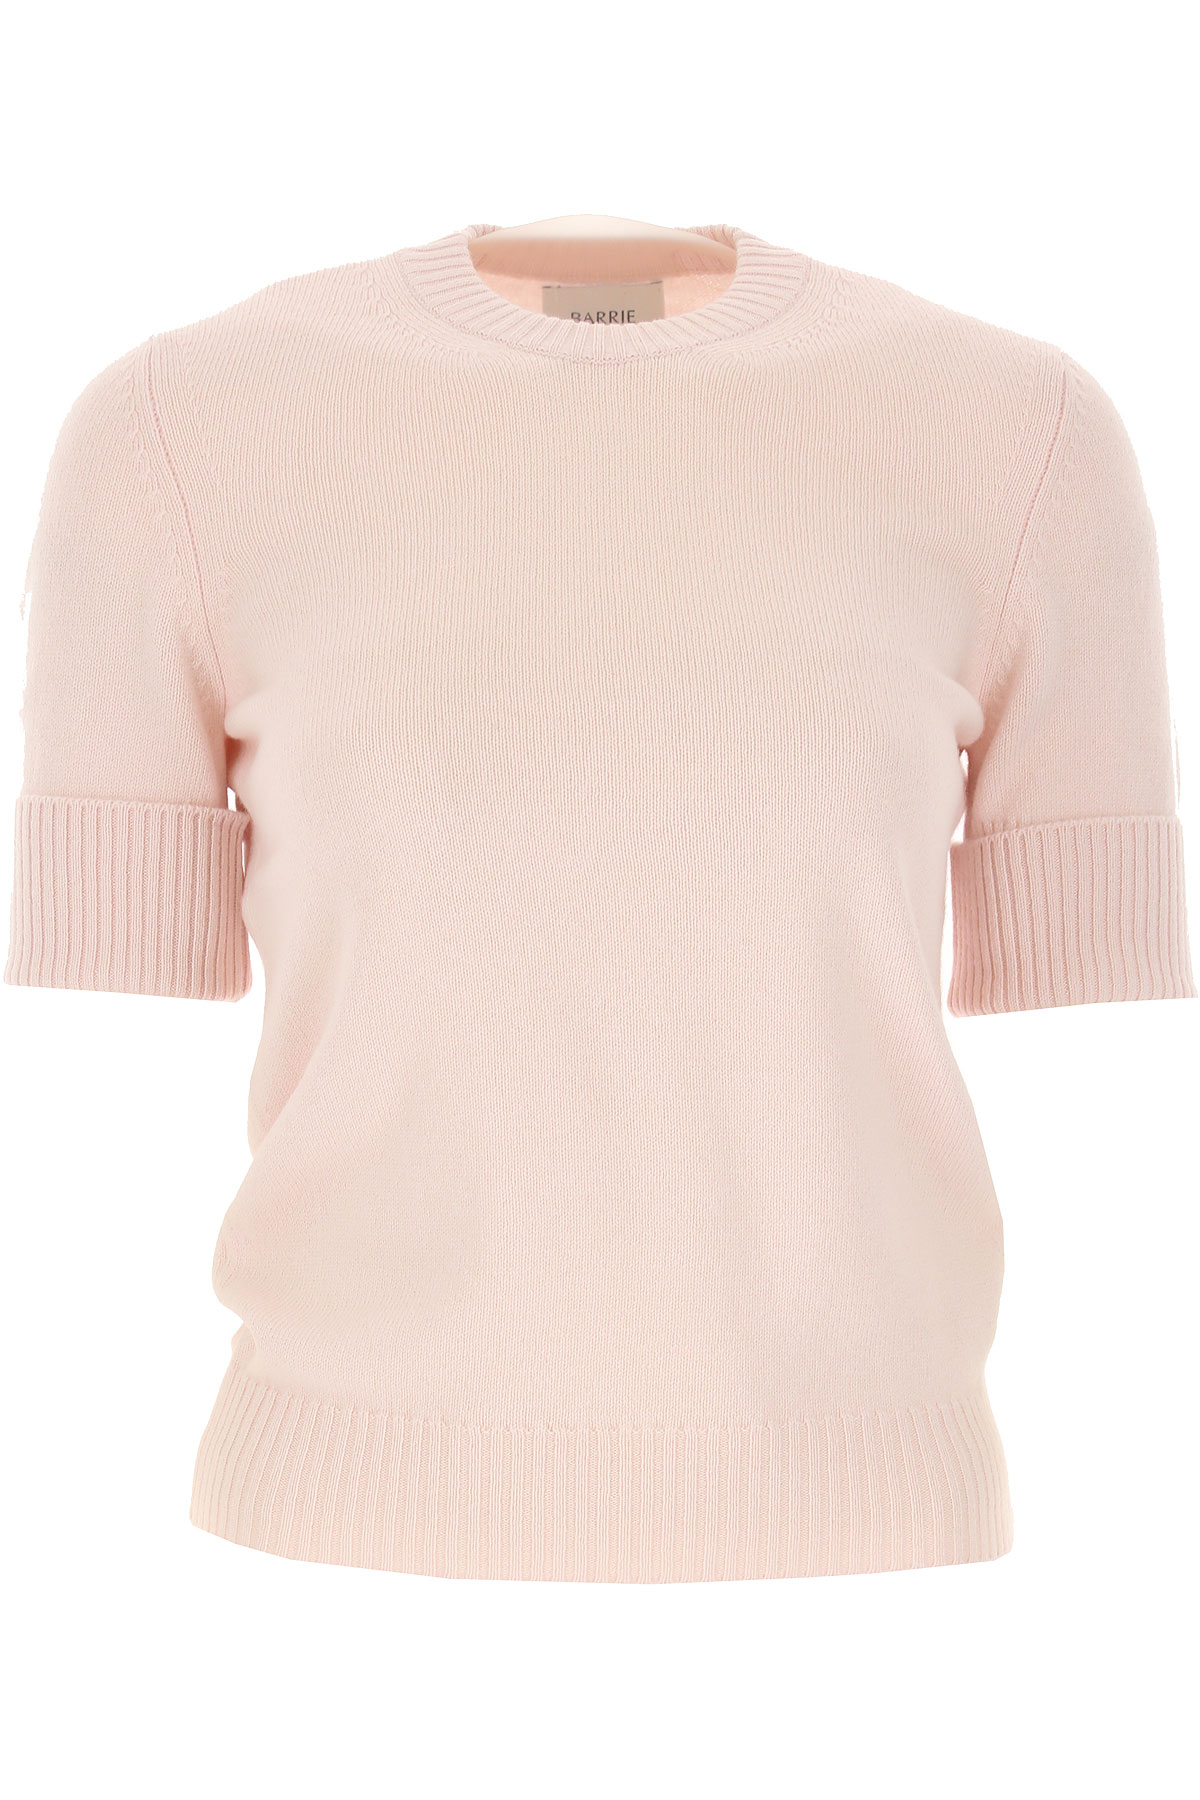 Barrie Sweater for Women Jumper On Sale, Pale Rose, Cashemere, 2019, 2 4